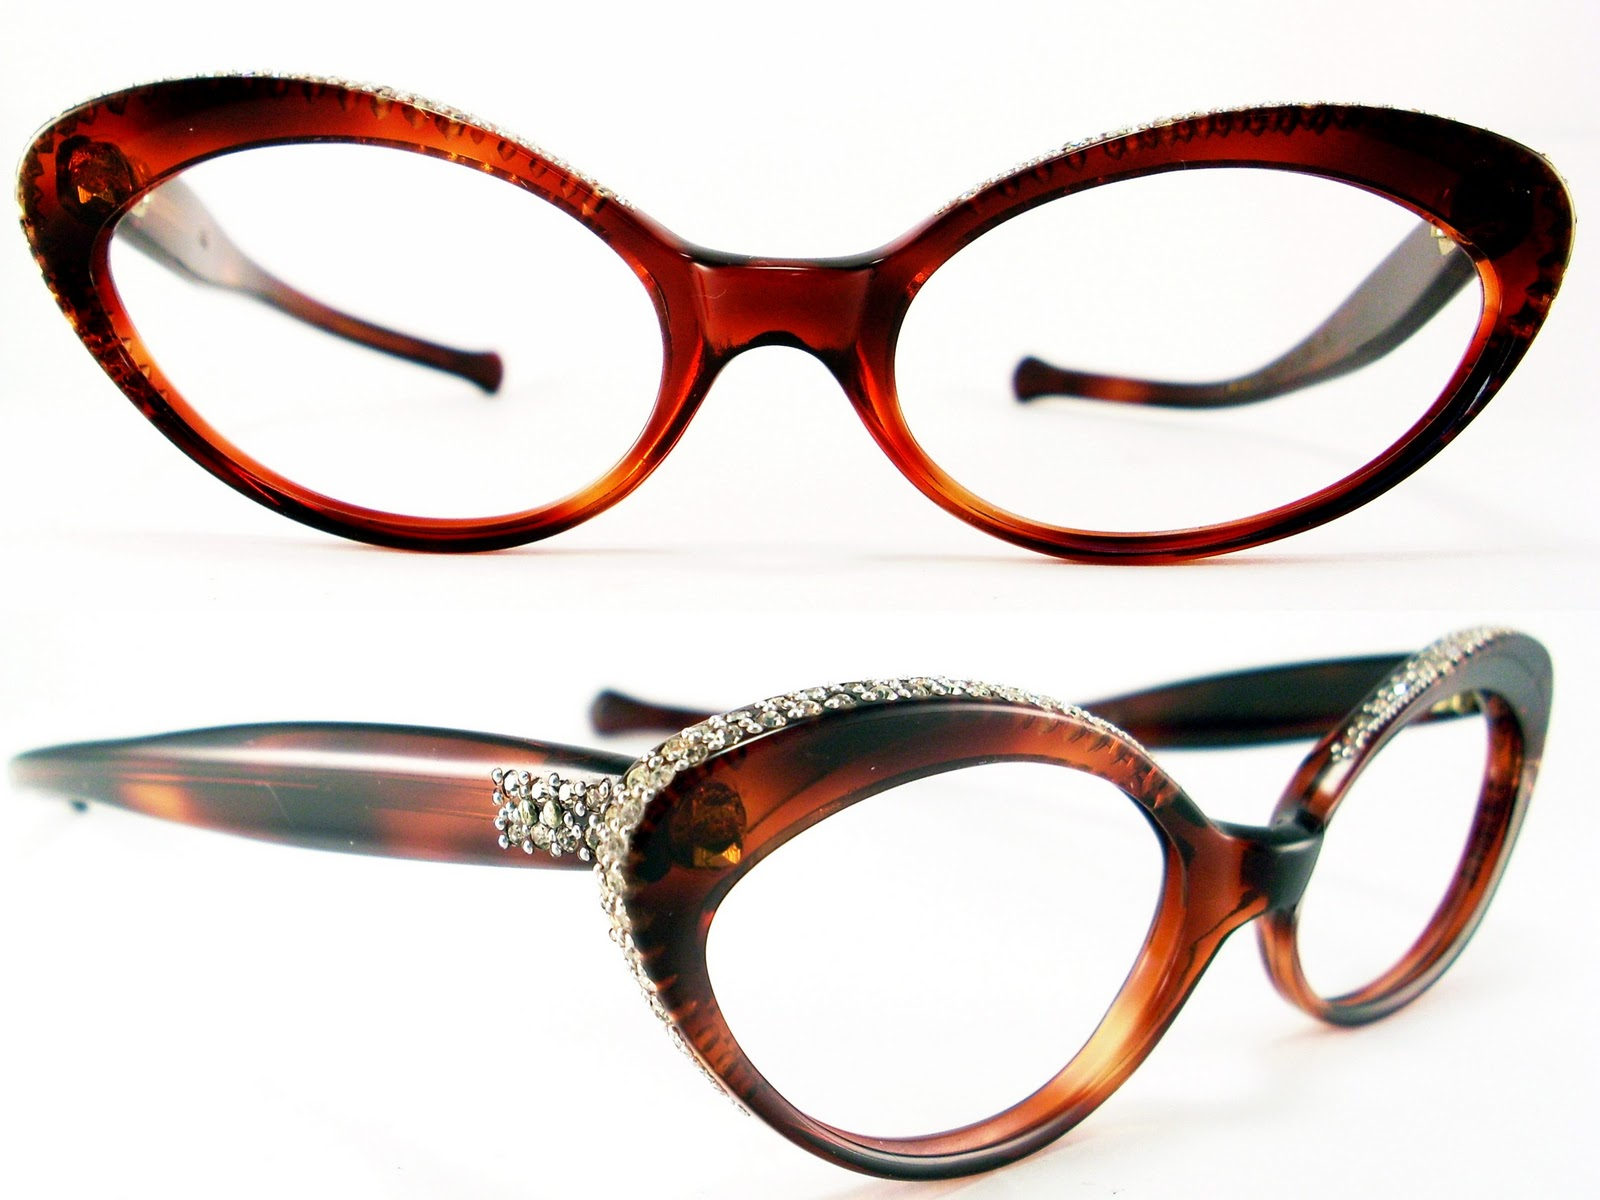 LOTHO + HIGH FASHION EYEWEAR FROM FRANCE | THE SPECTACLE SHOWCASE